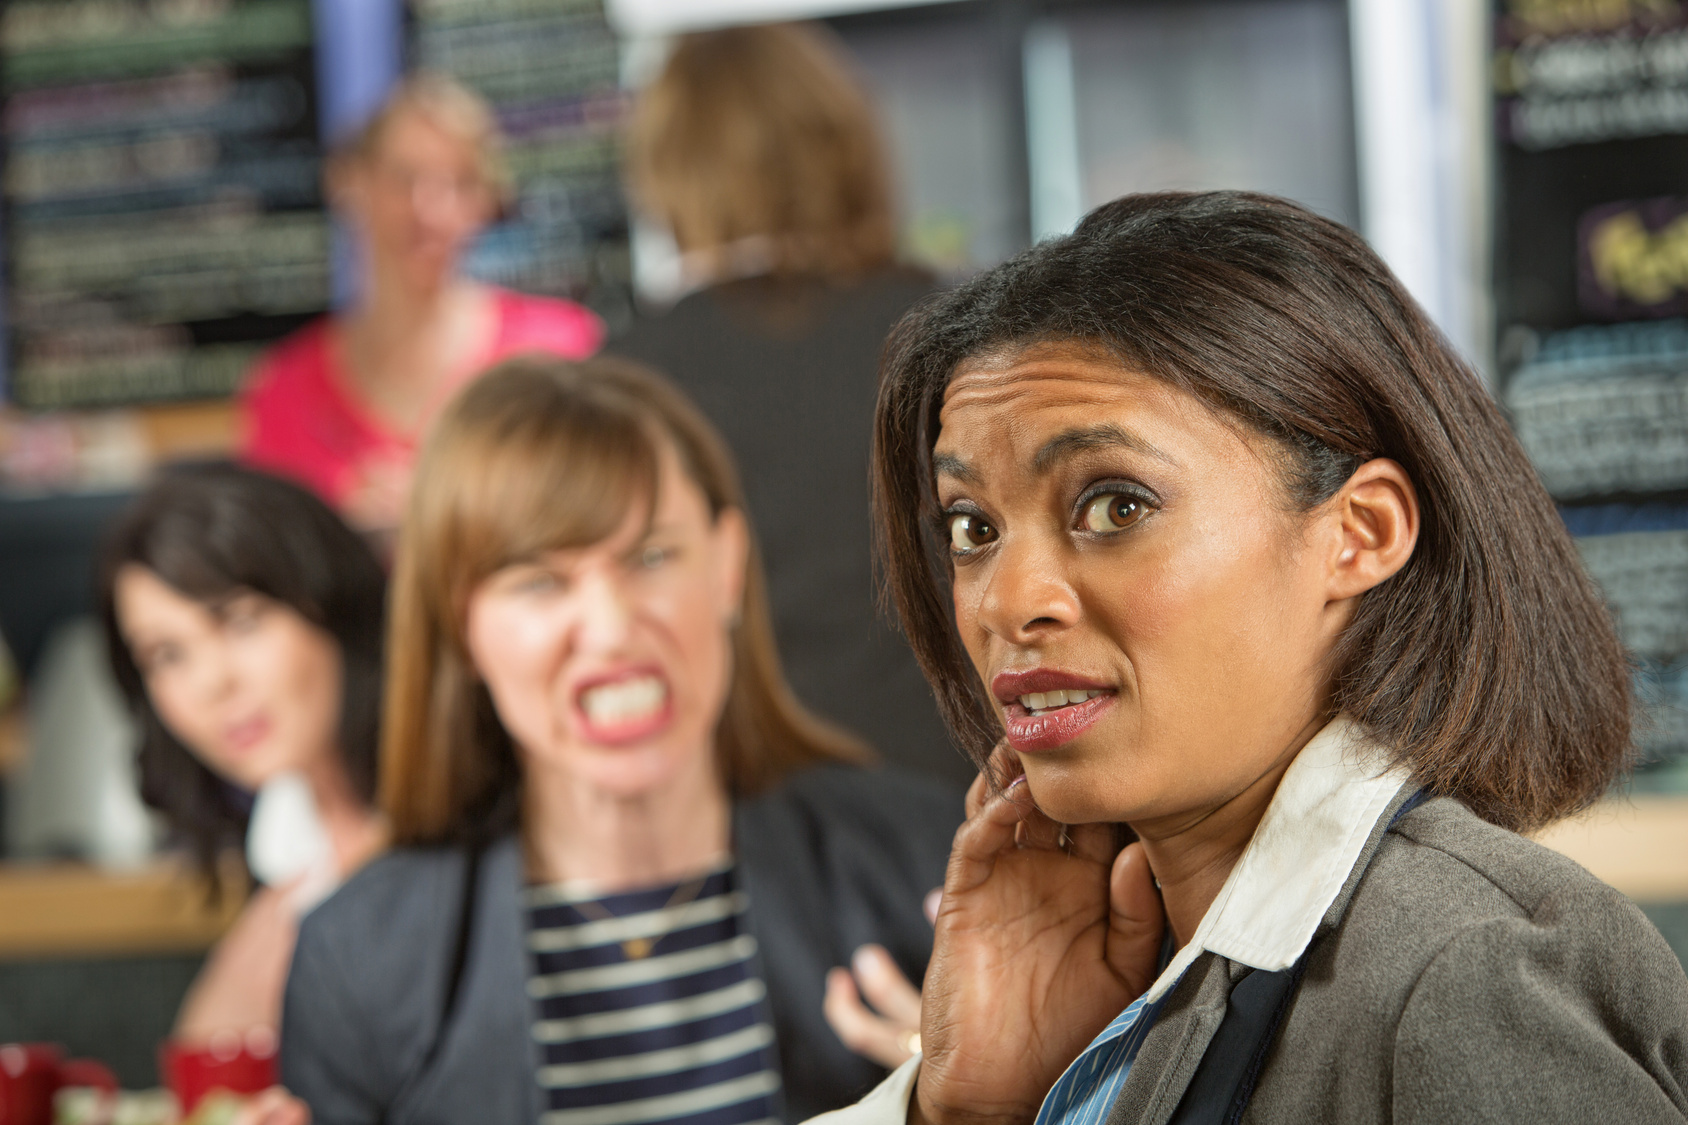 Five Tips for Dealing with Difficult Coworkers